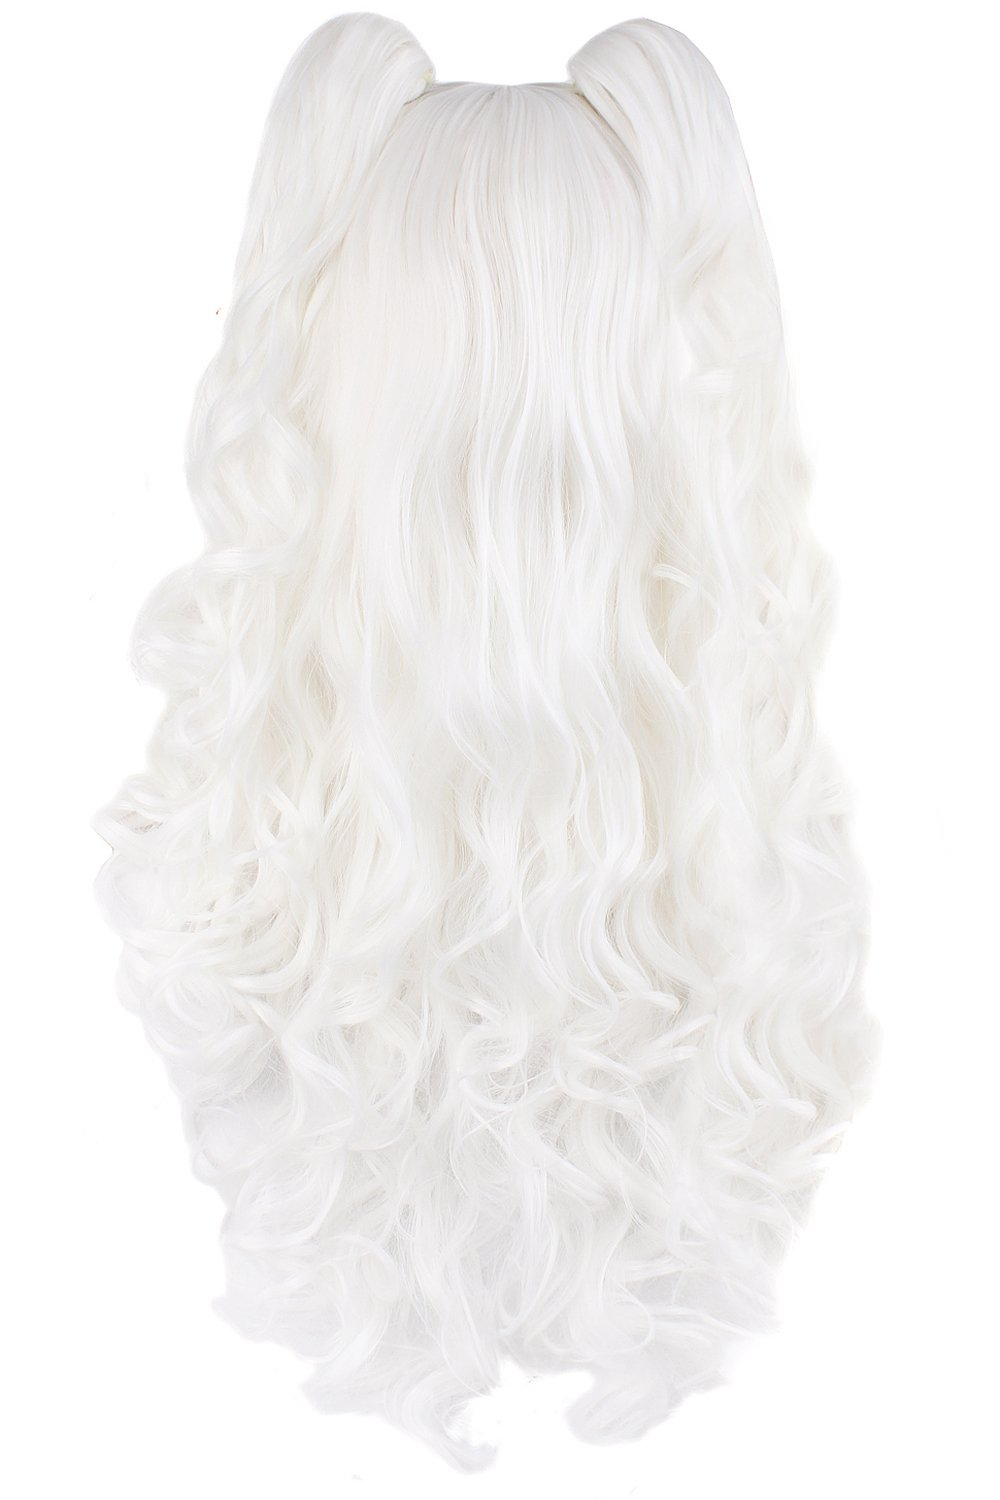 Brown MapofBeauty 28//70cm Lolita Long Curly Clip On Ponytails Cosplay Wig